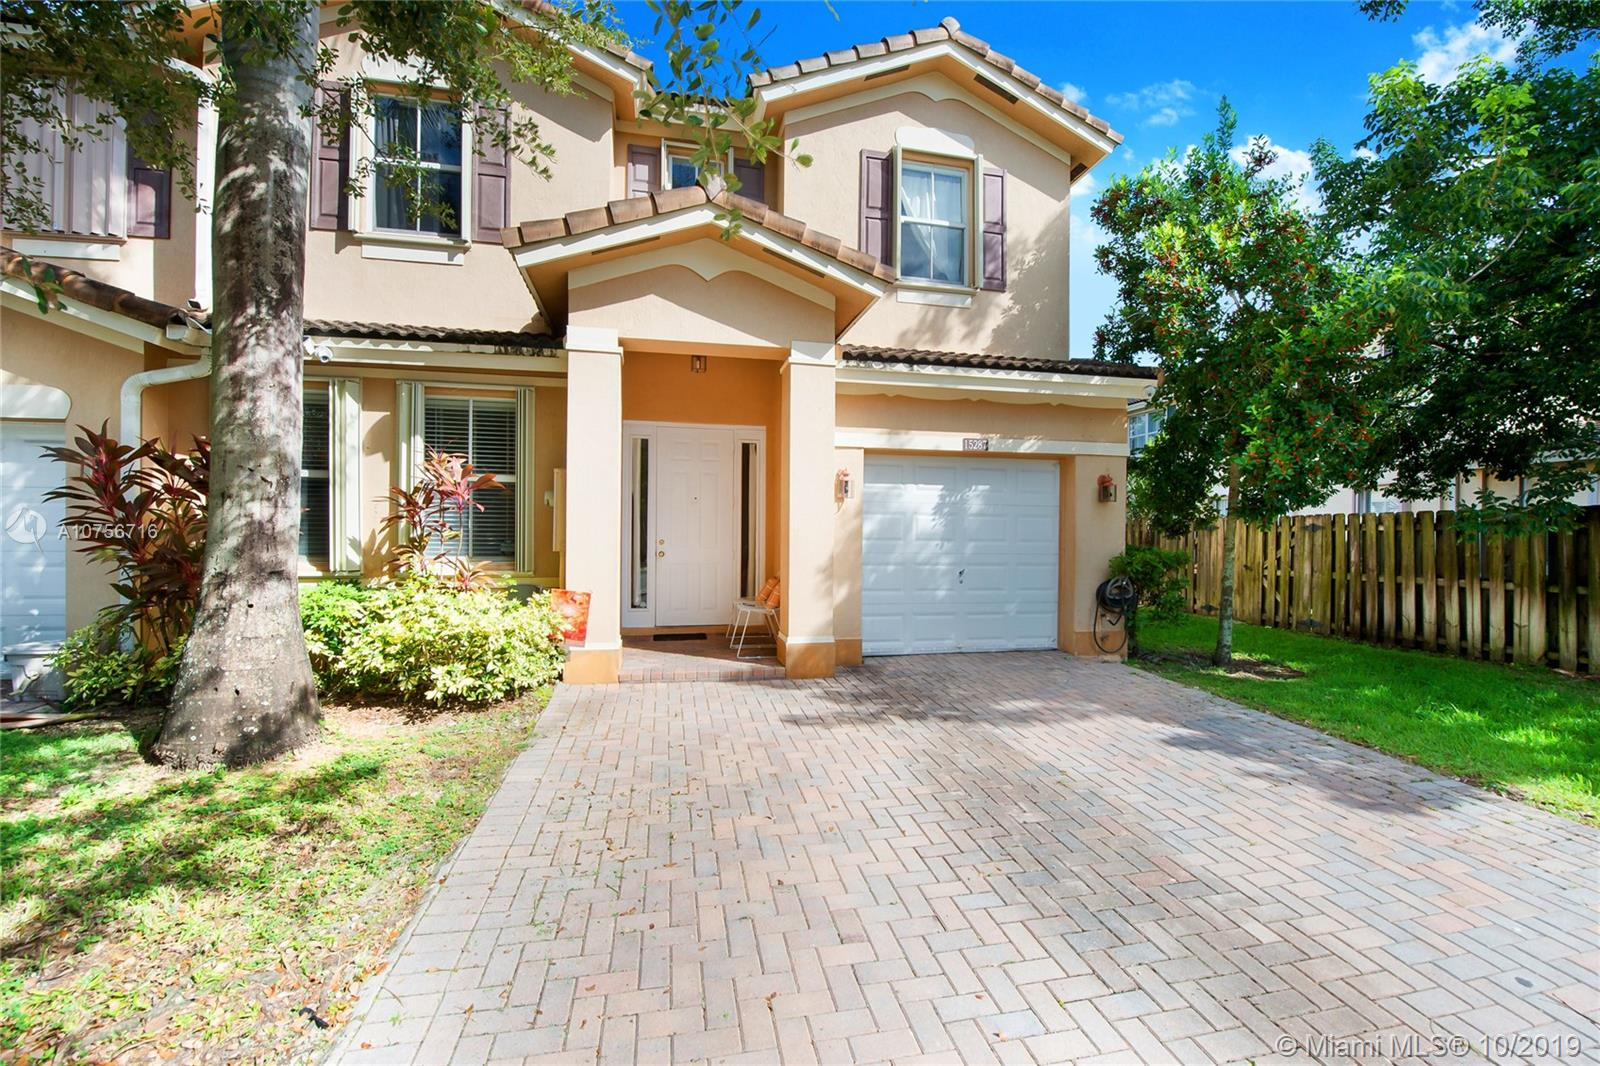 15287 SW 119th St, Kendall in Miami-dade County County, FL 33196 Home for Sale